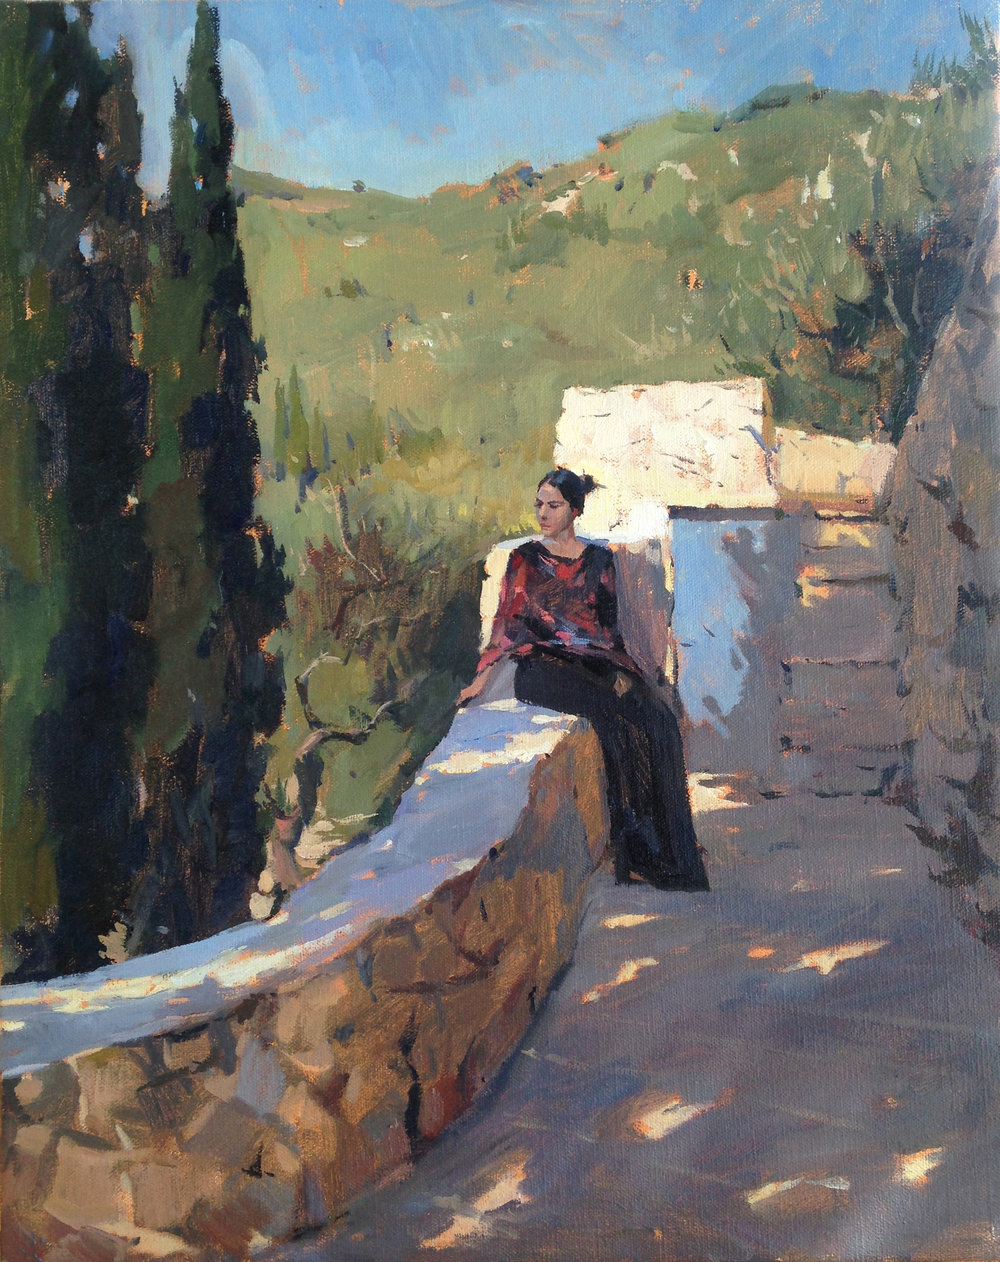 Anna in morning light 35 cm x 50 cm Oil on linen